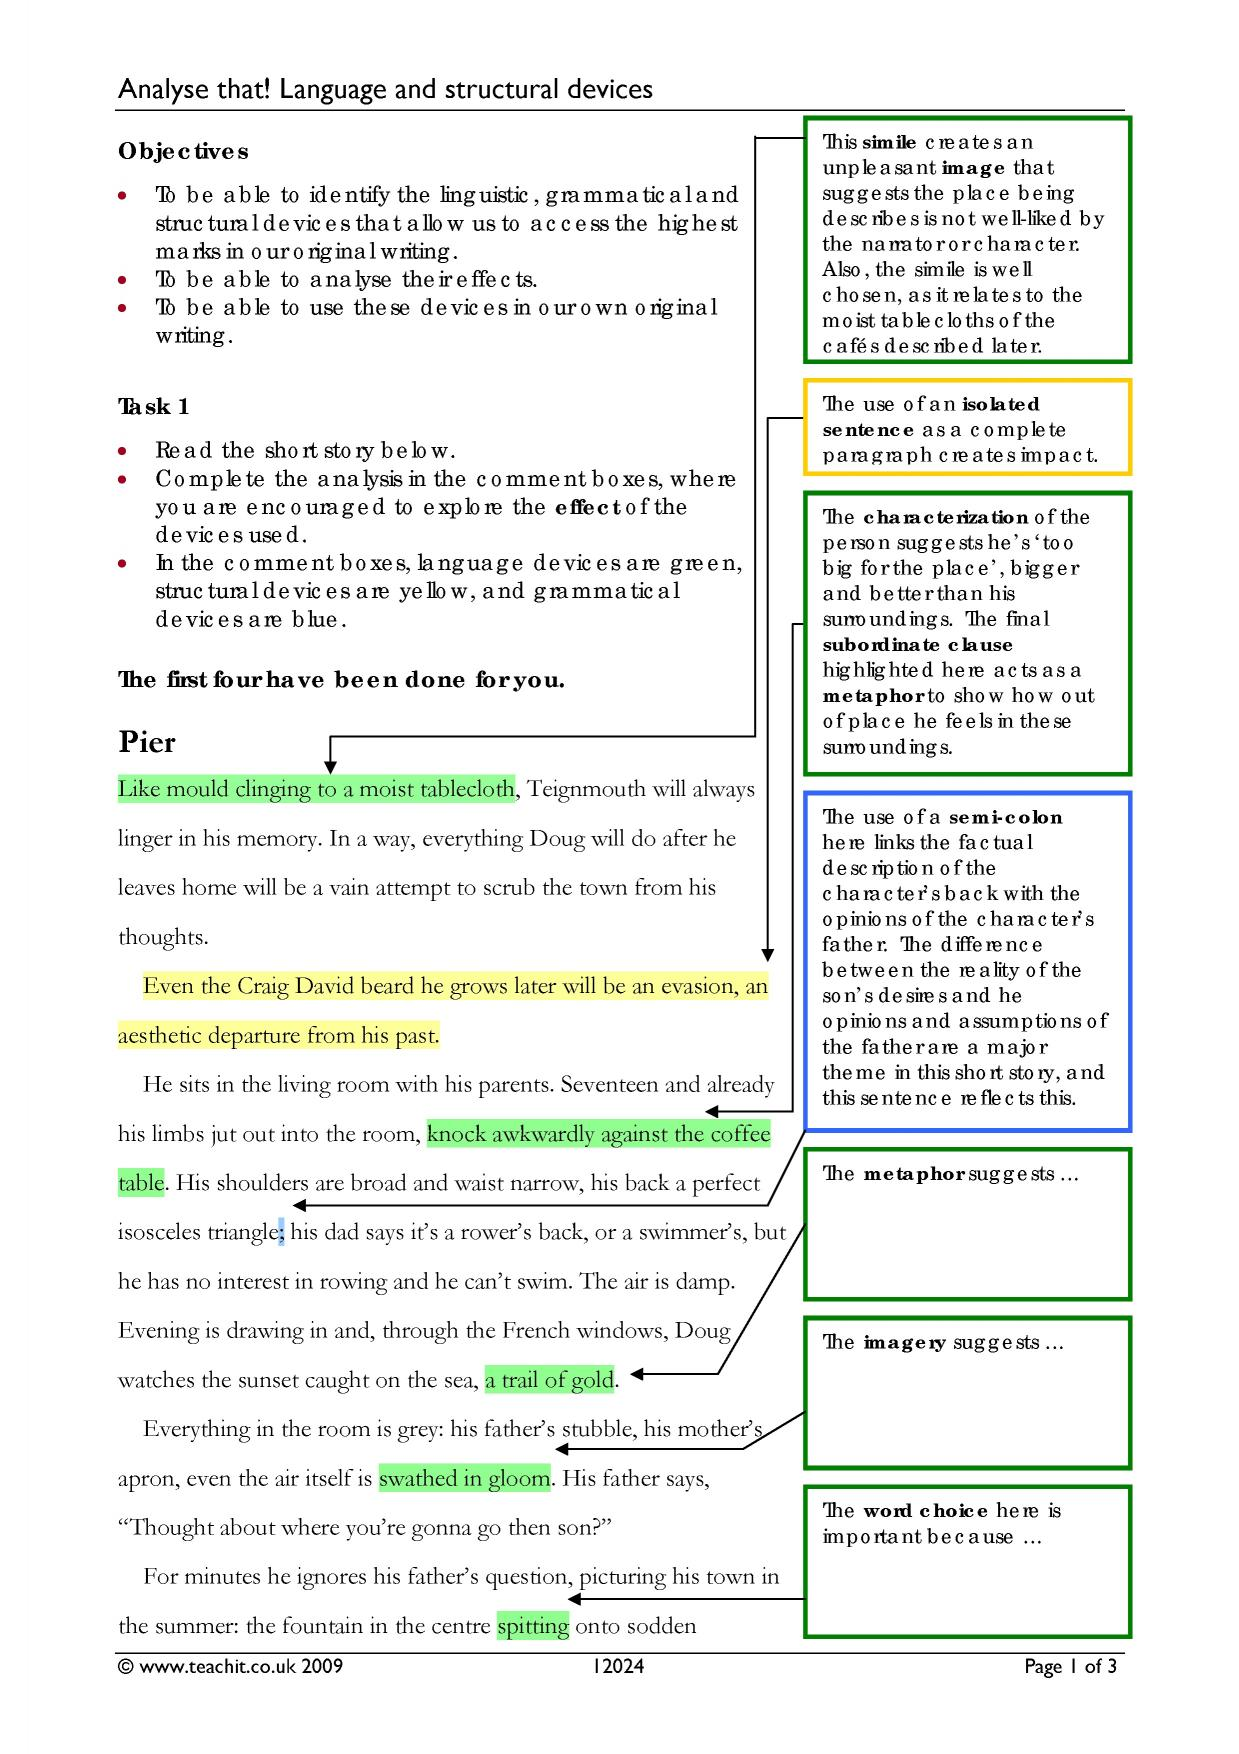 gcse creative writing All resources for creative writing and descriptive writing for common entrance, ks3, gcse and igcse with all techniques, spelling, punctuation and grammar.